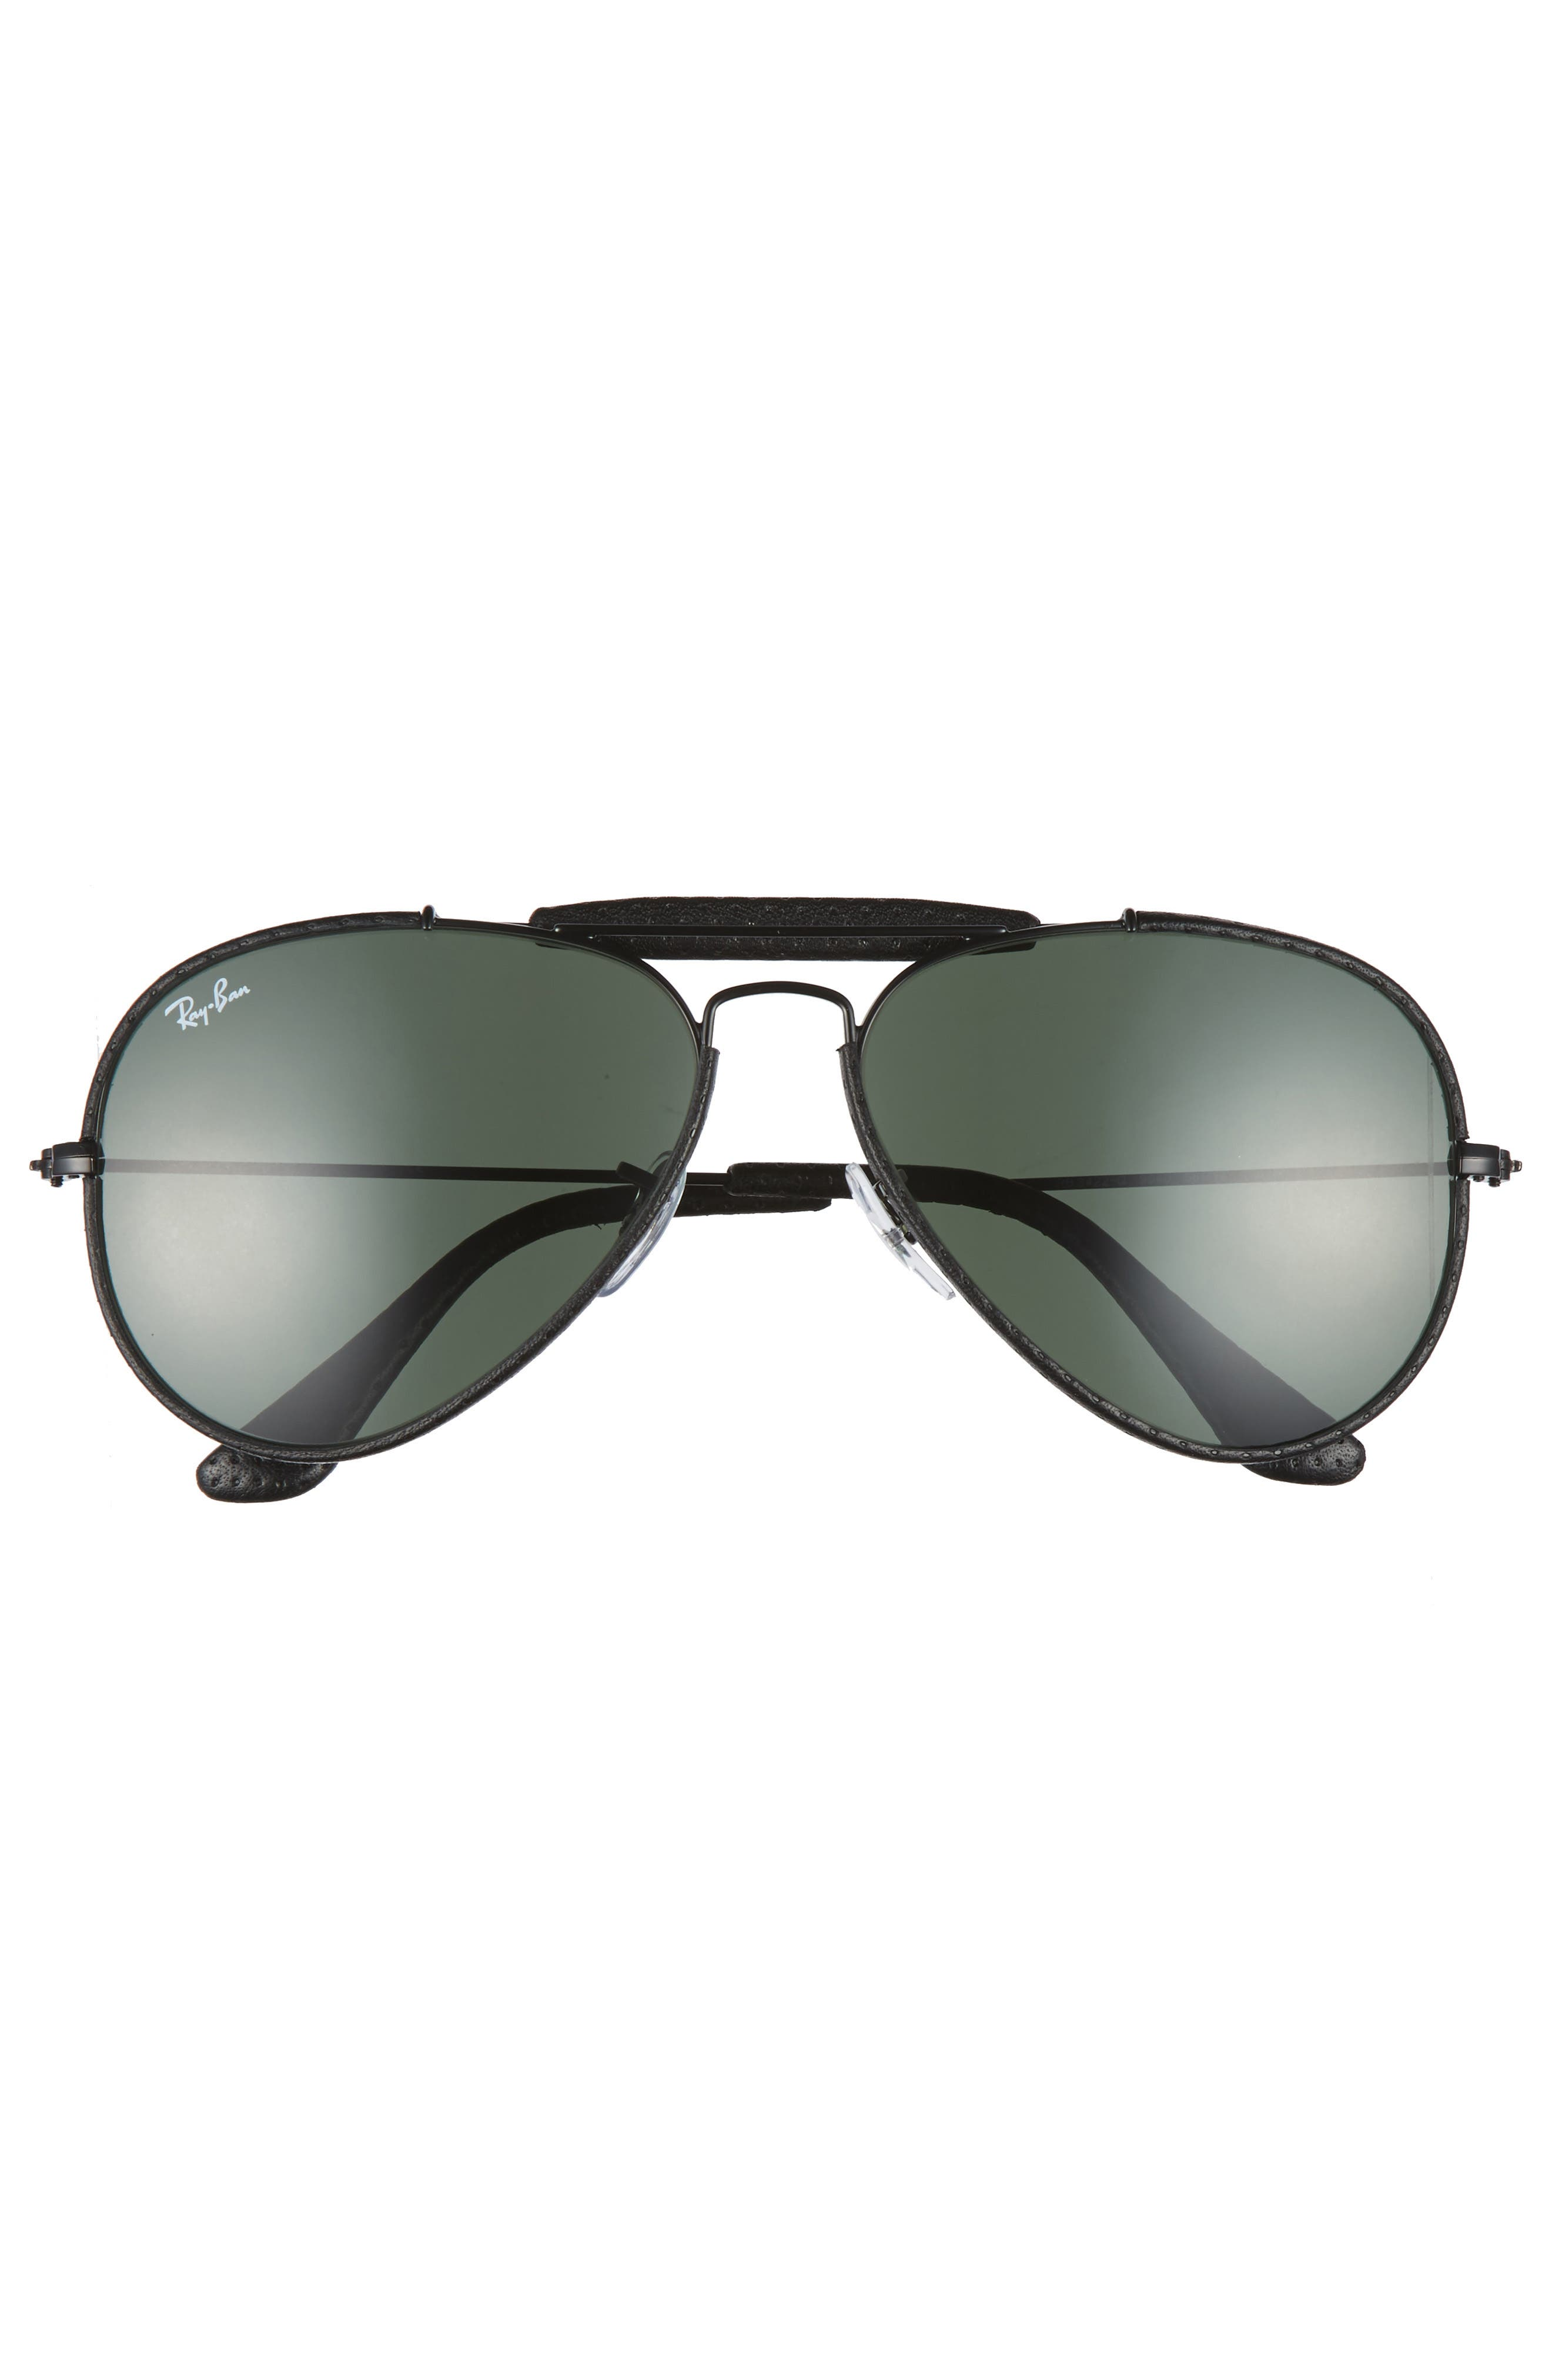 Outdoorsman 58mm Aviator Sunglasses,                             Alternate thumbnail 3, color,                             Black/ Green